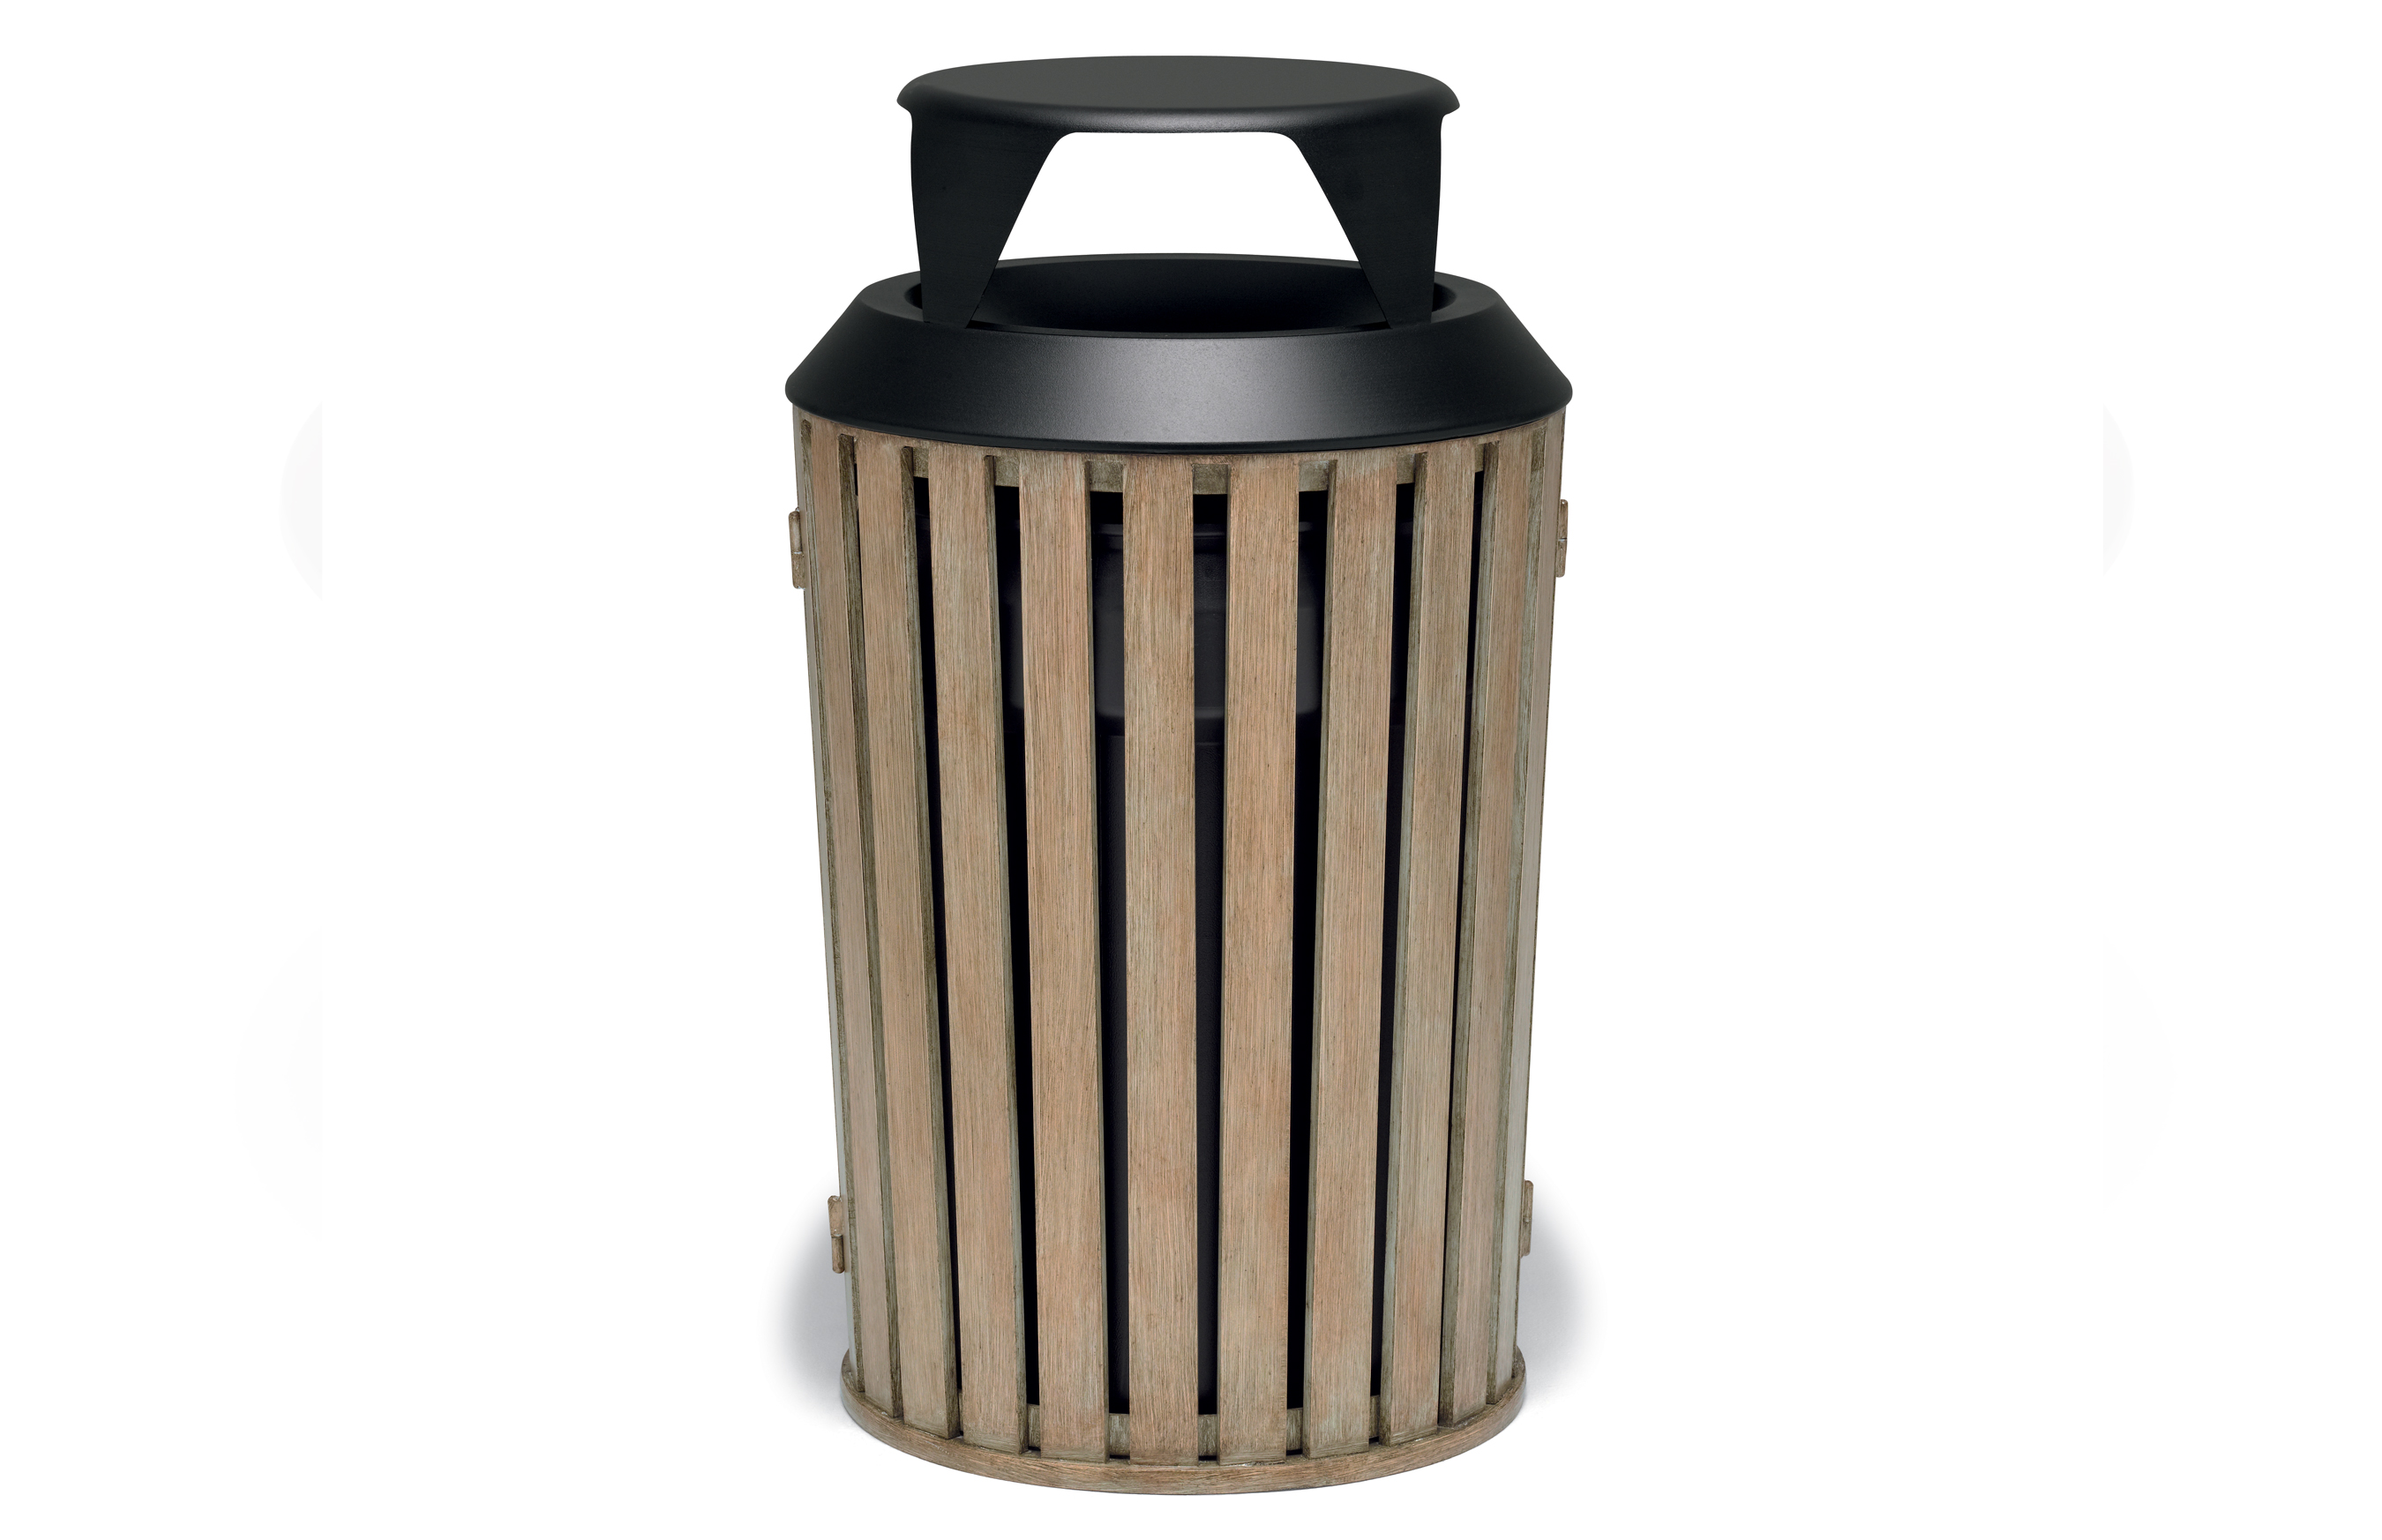 Woodridge Collection 32 Gallon Trash Receptacle with Bonnet Top